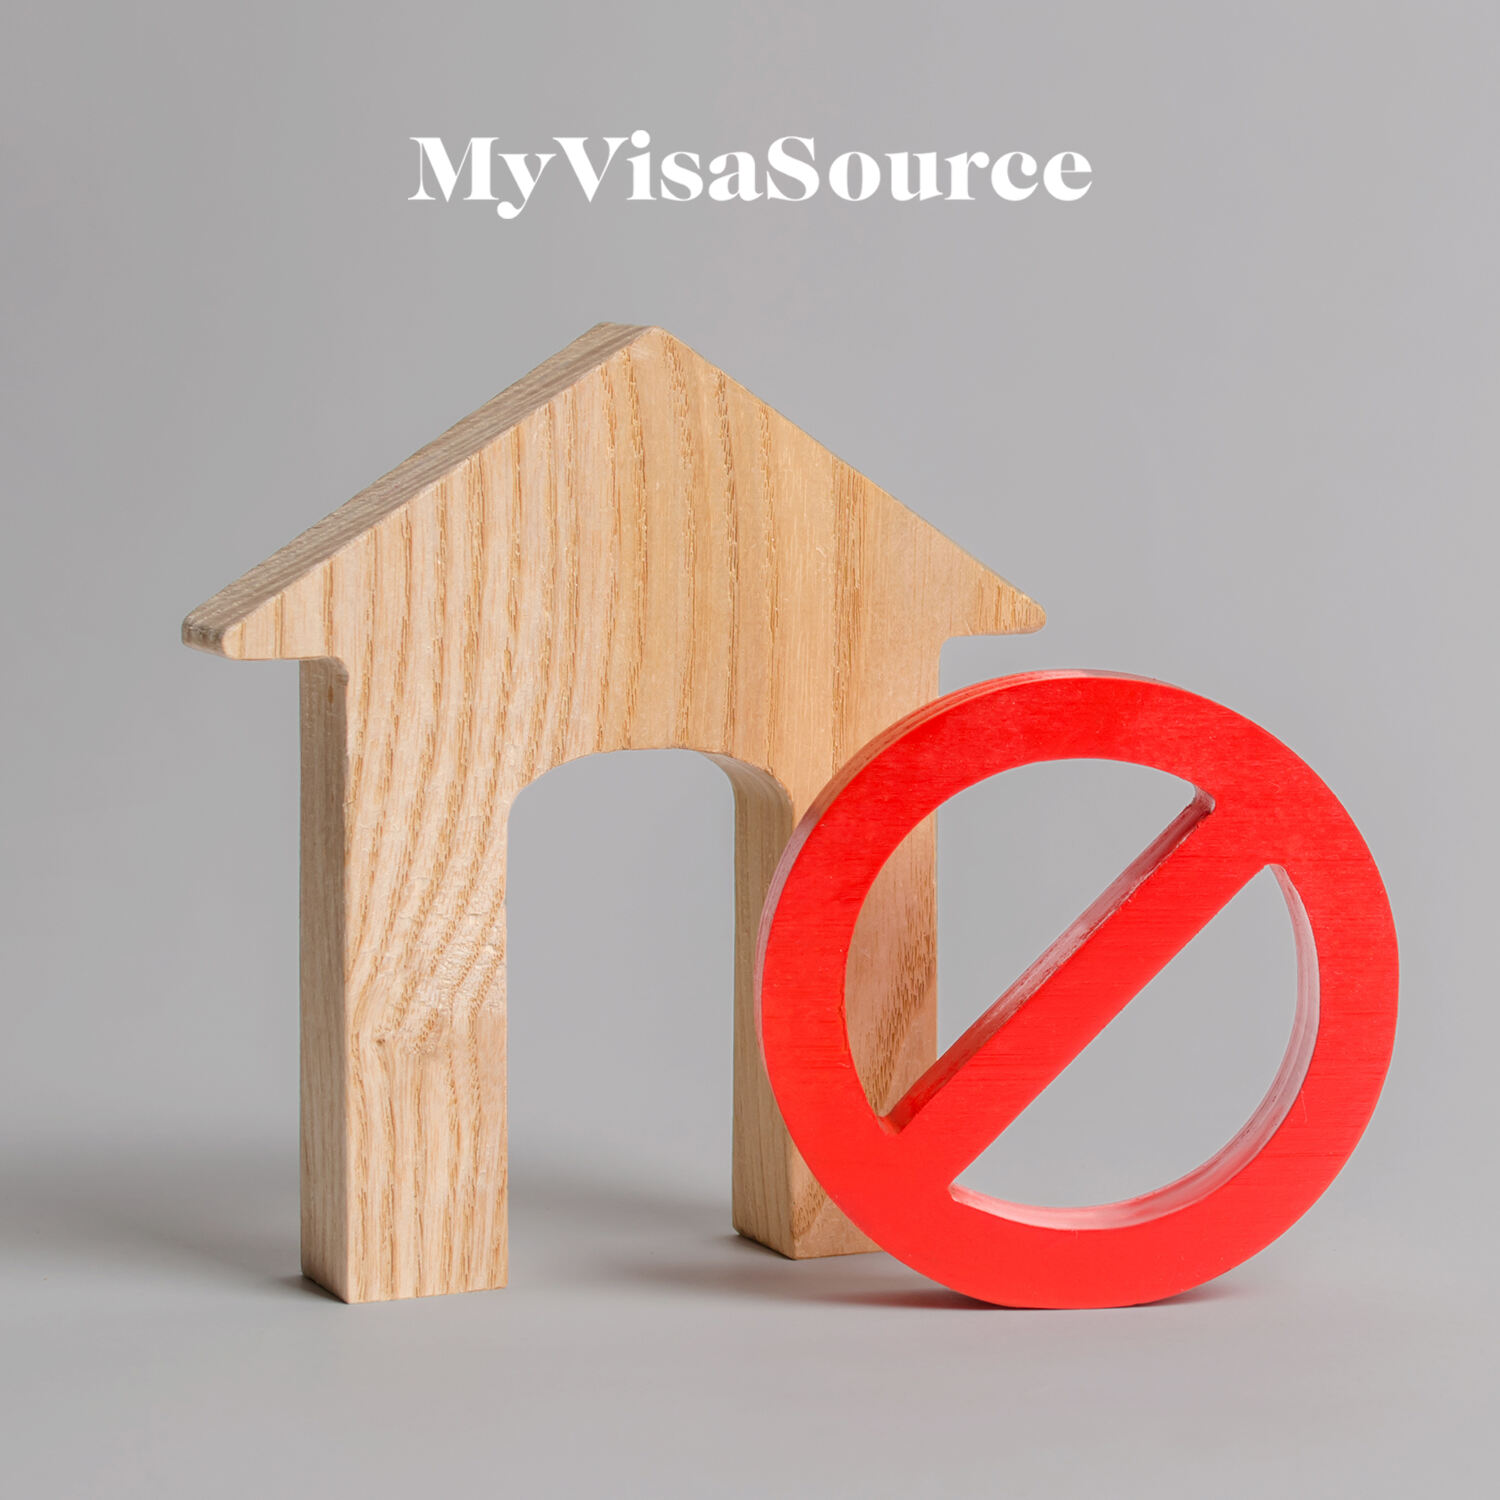 wooden house cutout with a red no symbol beside it